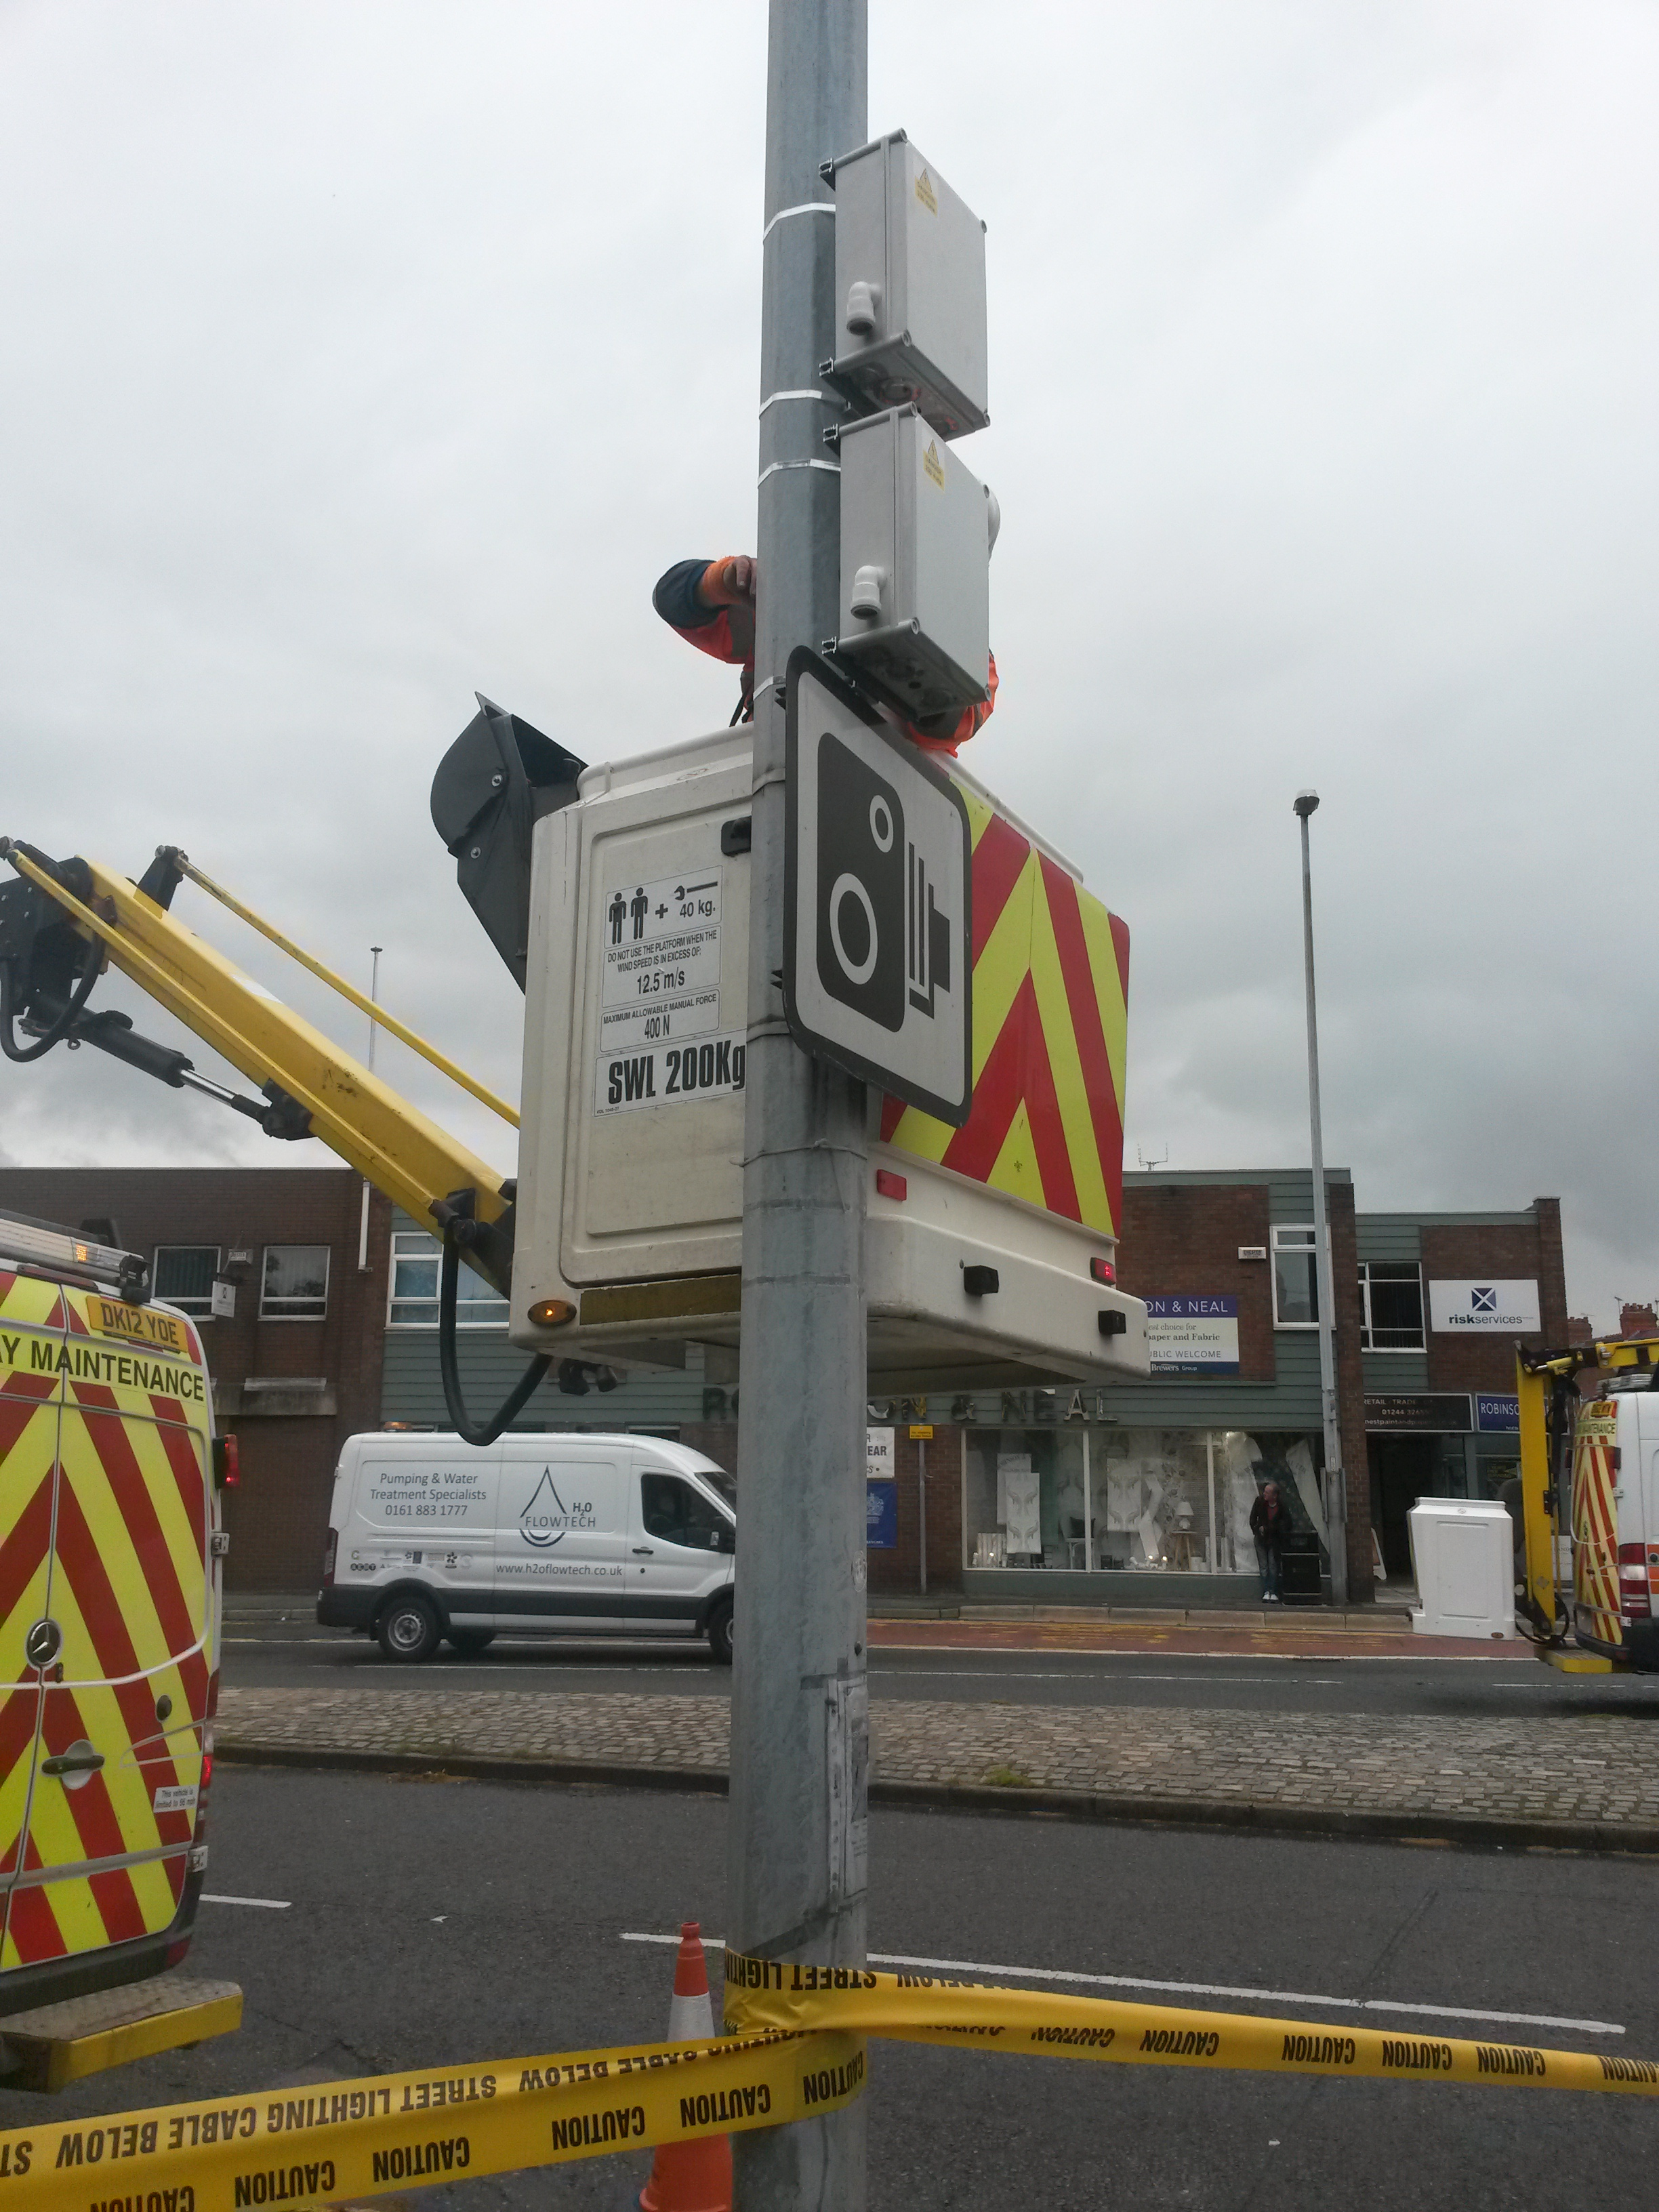 Air Quality Monitoring solution contributes to reduce traffic pollution in Chester, UK